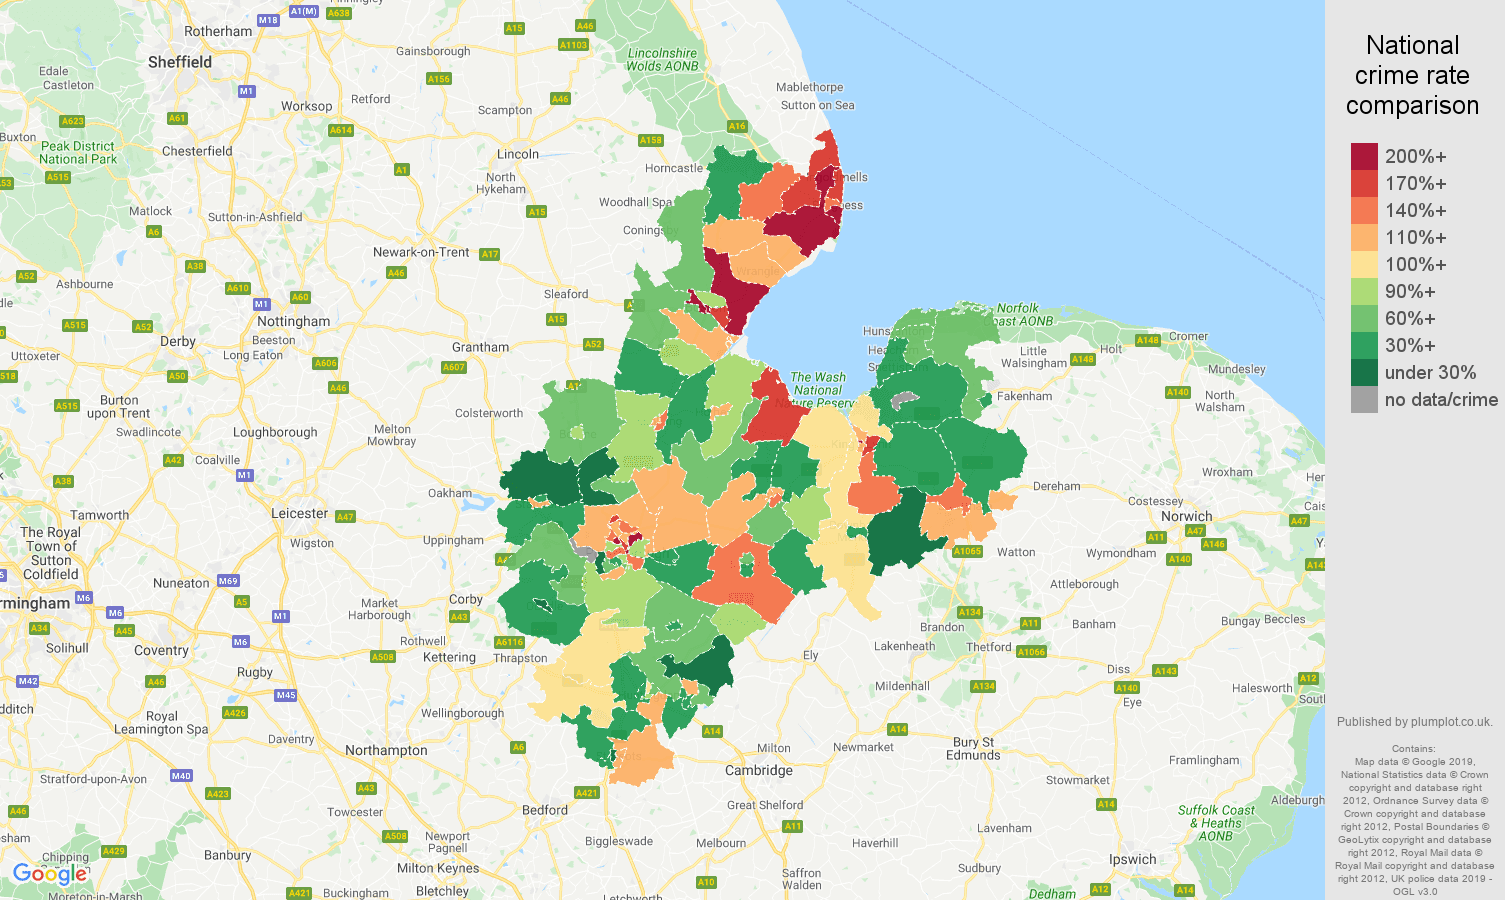 Peterborough other crime rate comparison map